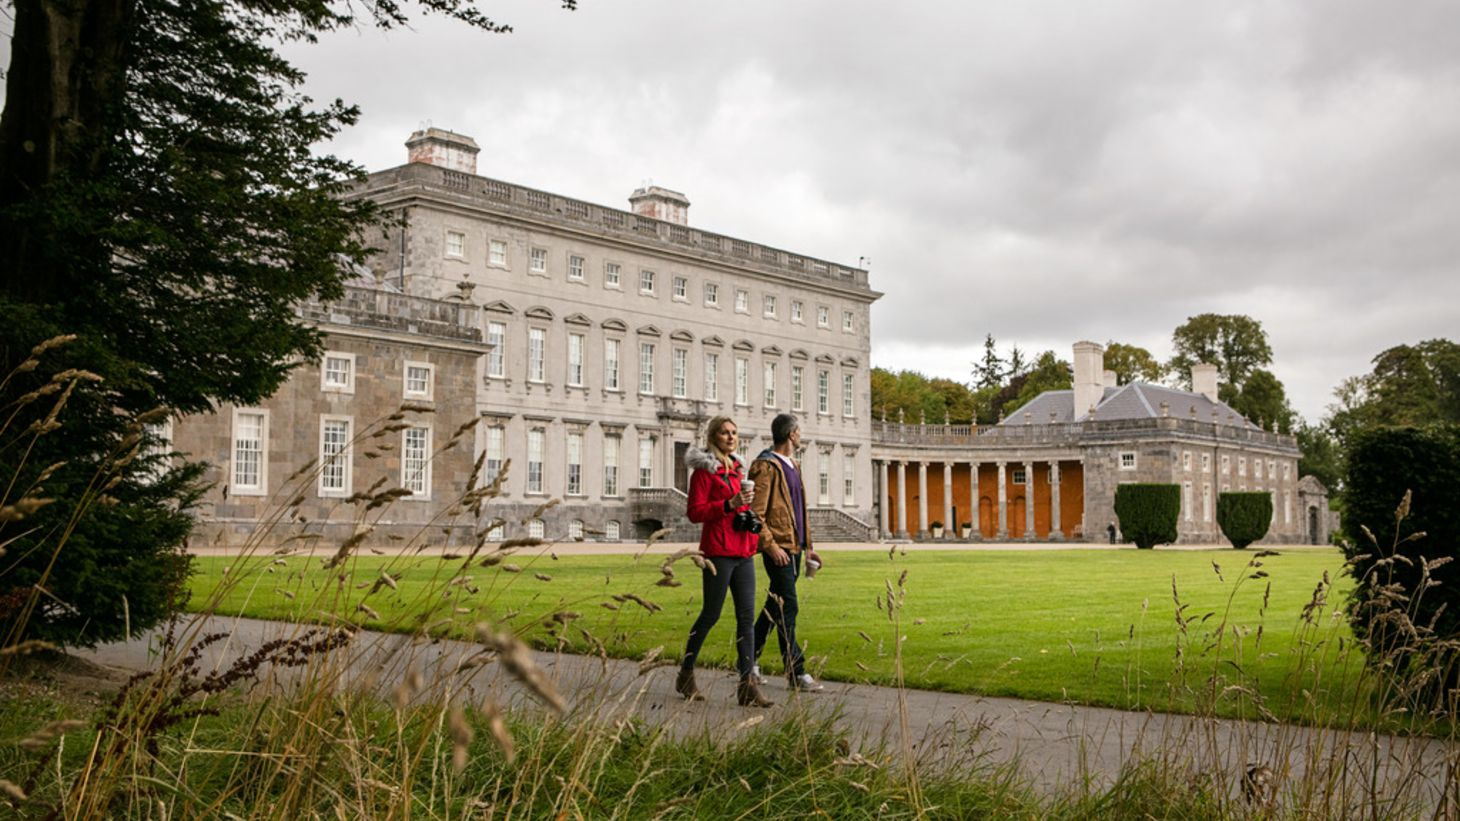 Explore the grounds of Castletown House.